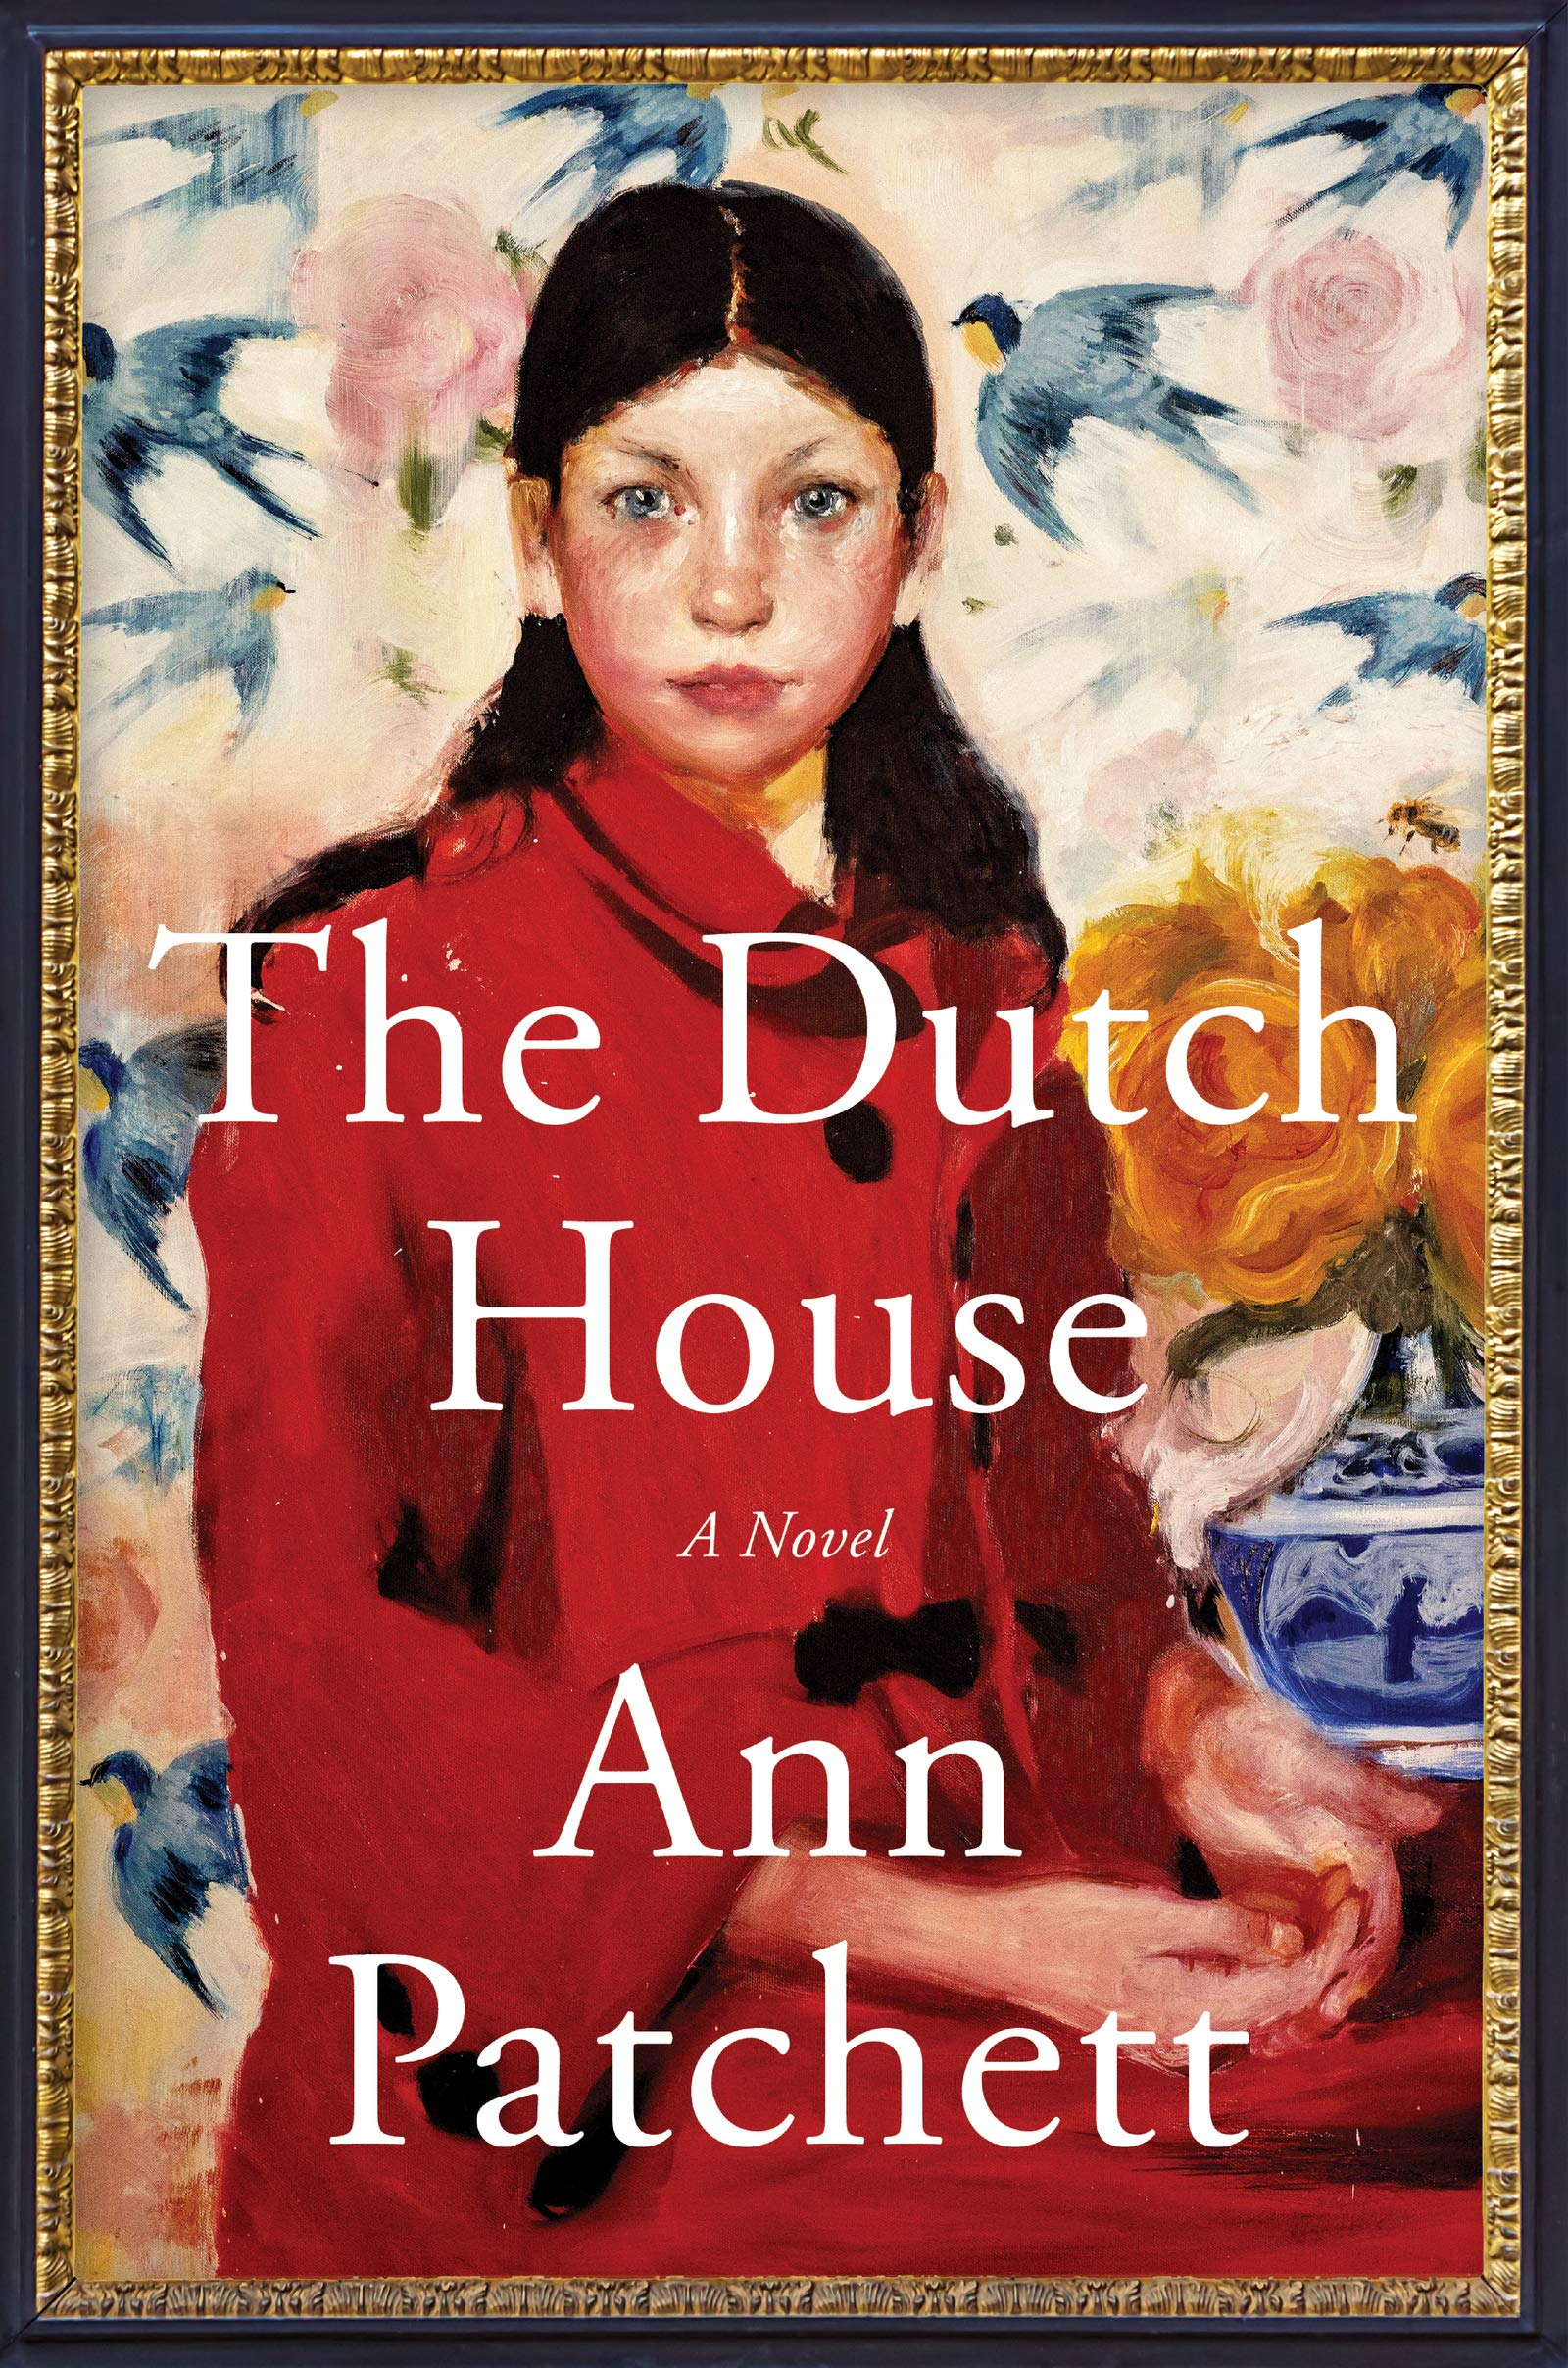 Image result for the dutch house by ann patchett